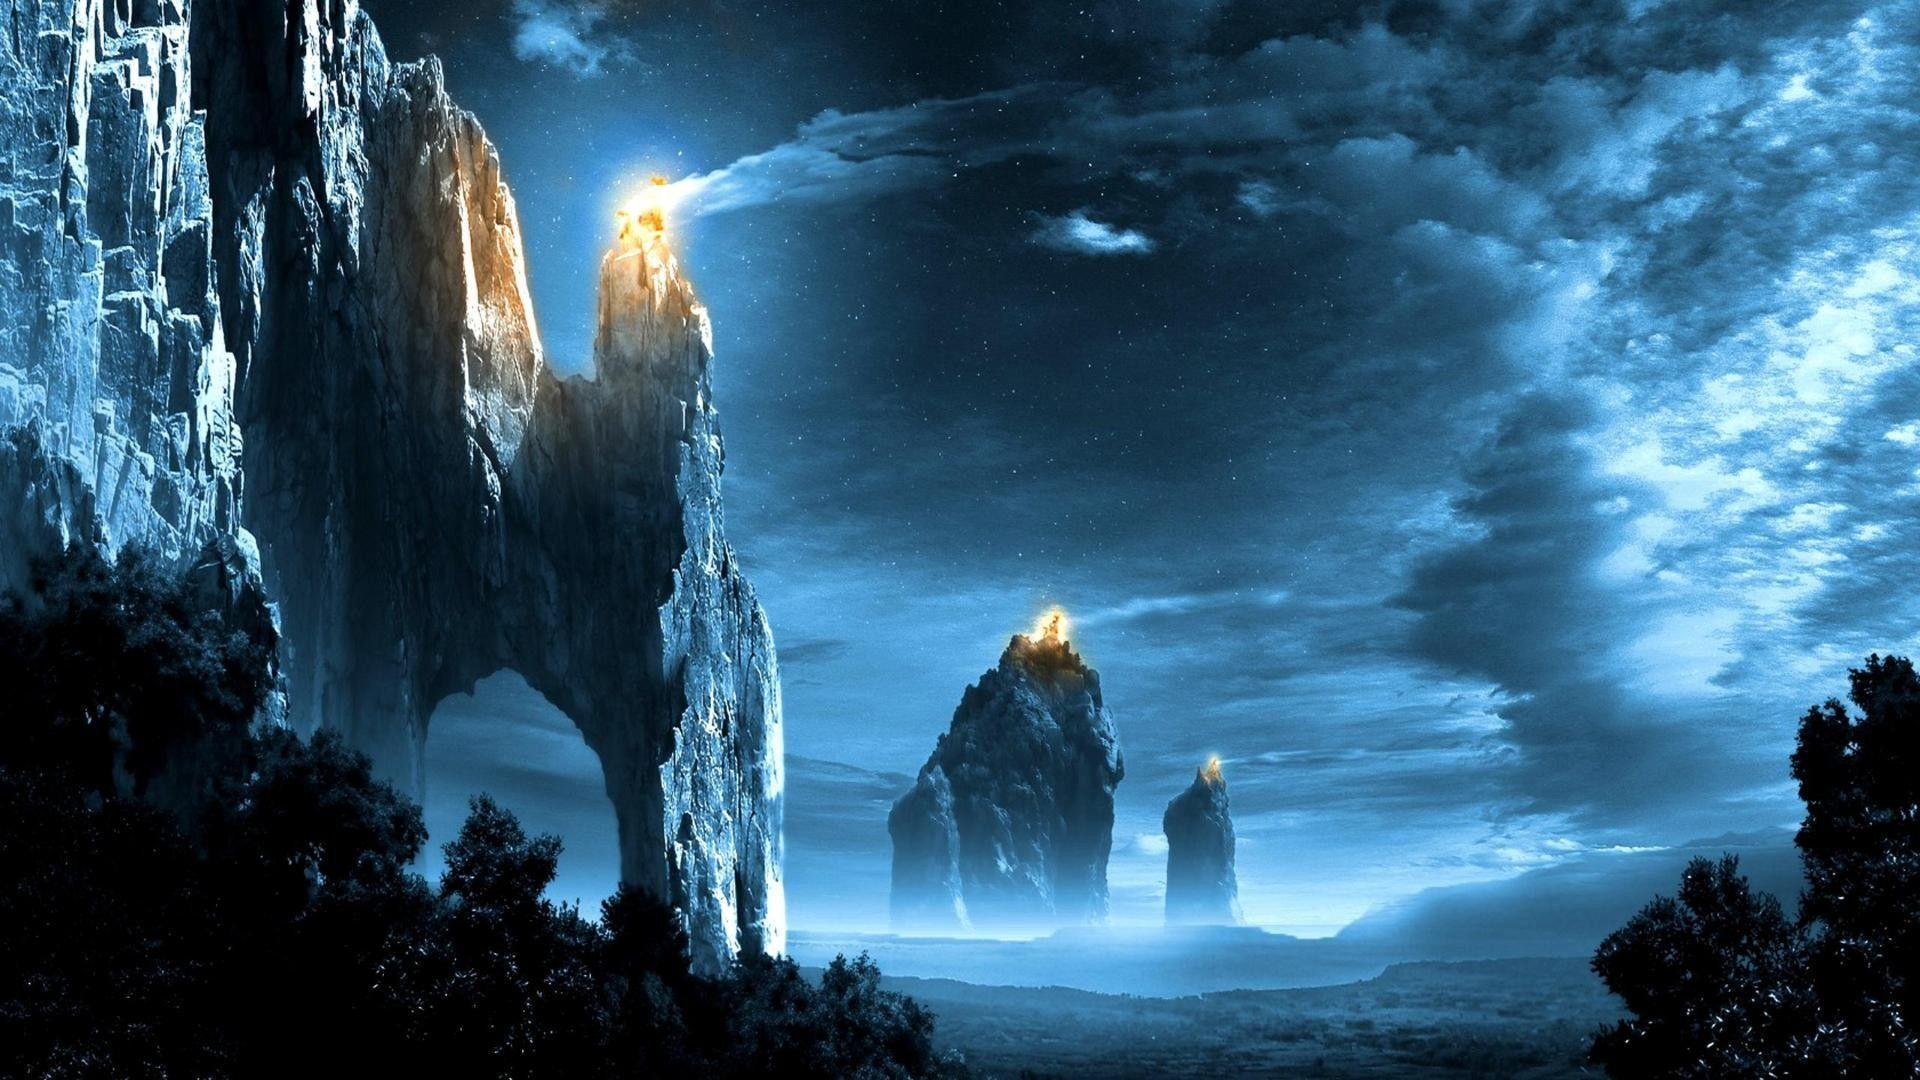 Fantasy art landscapes fire signal lord rings games wallpapers